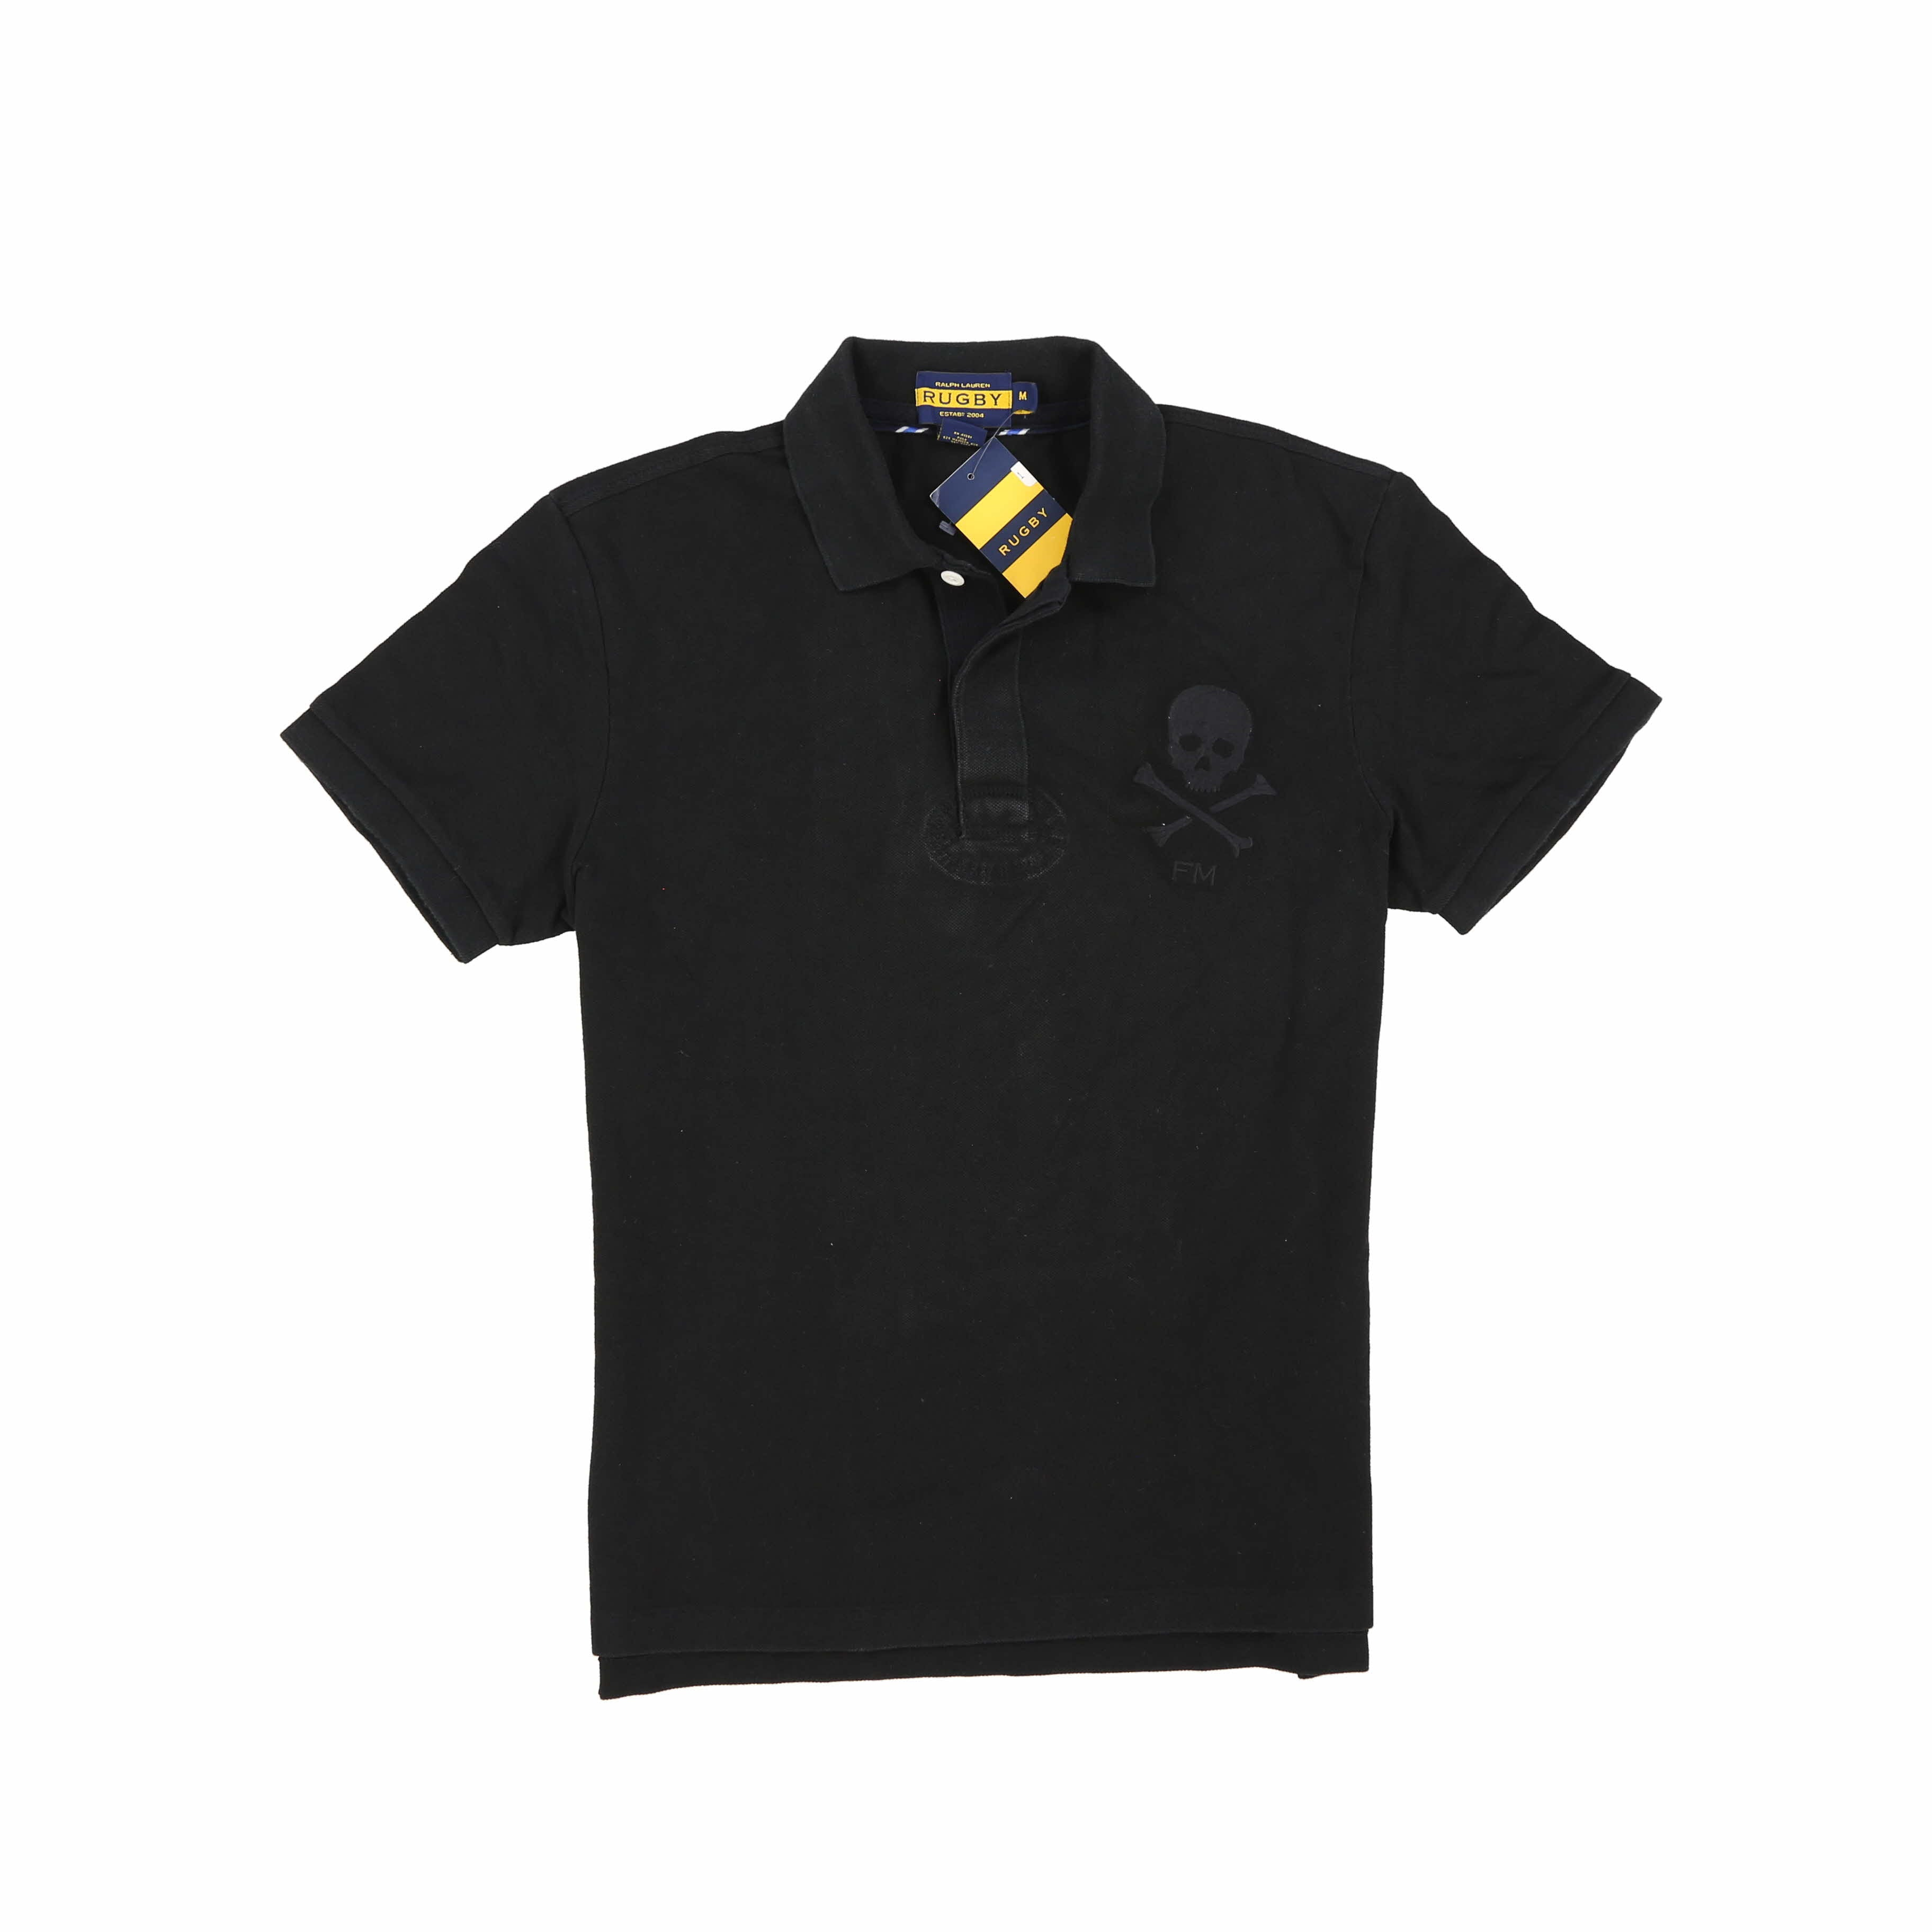 RUGBY MYOP BASICS POLO // NAVY